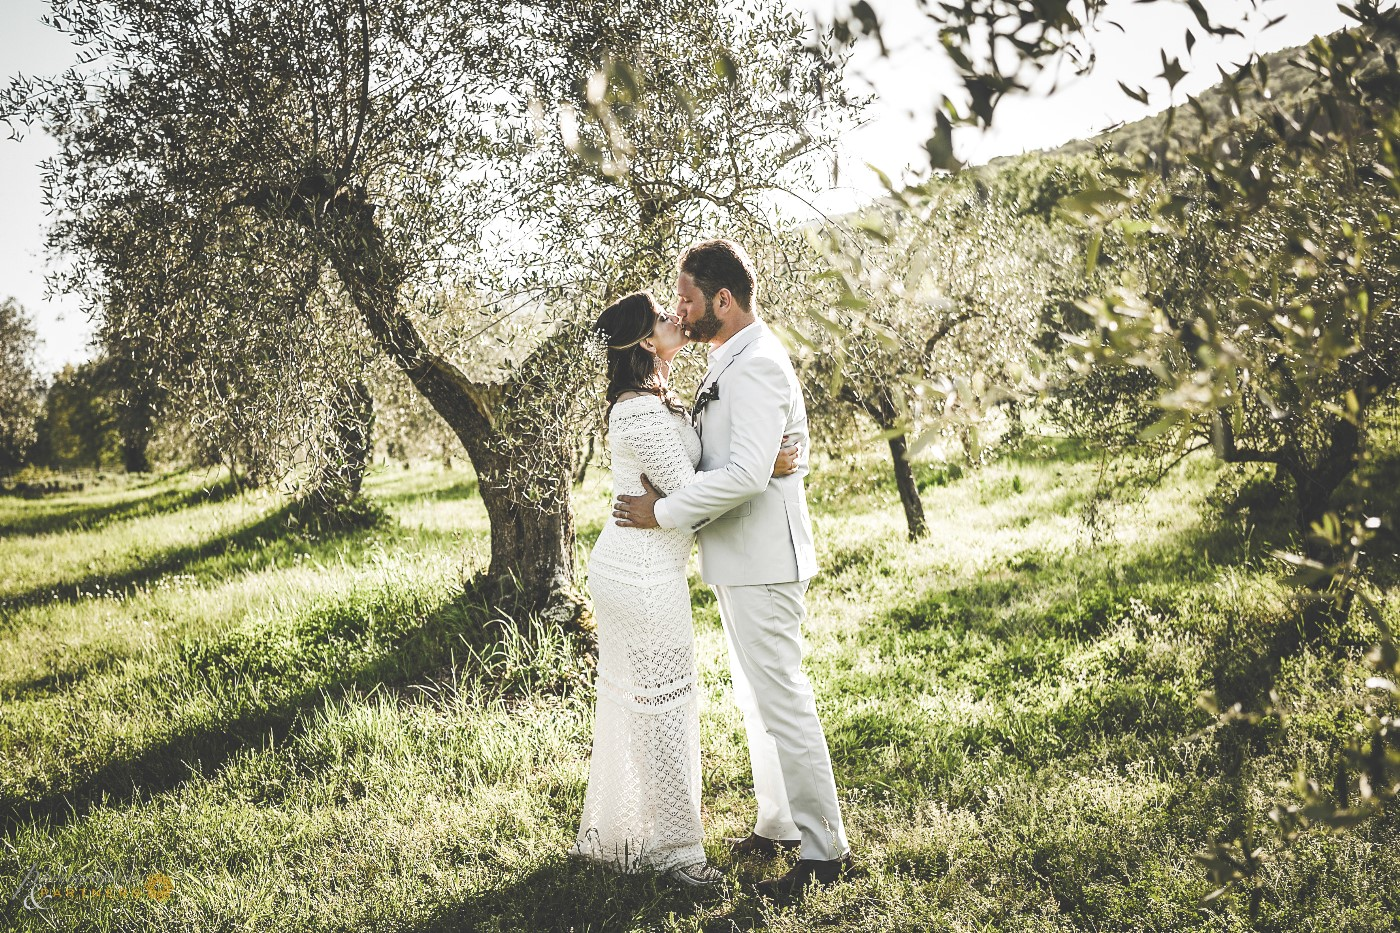 umbria_wedding_photos_16.jpg